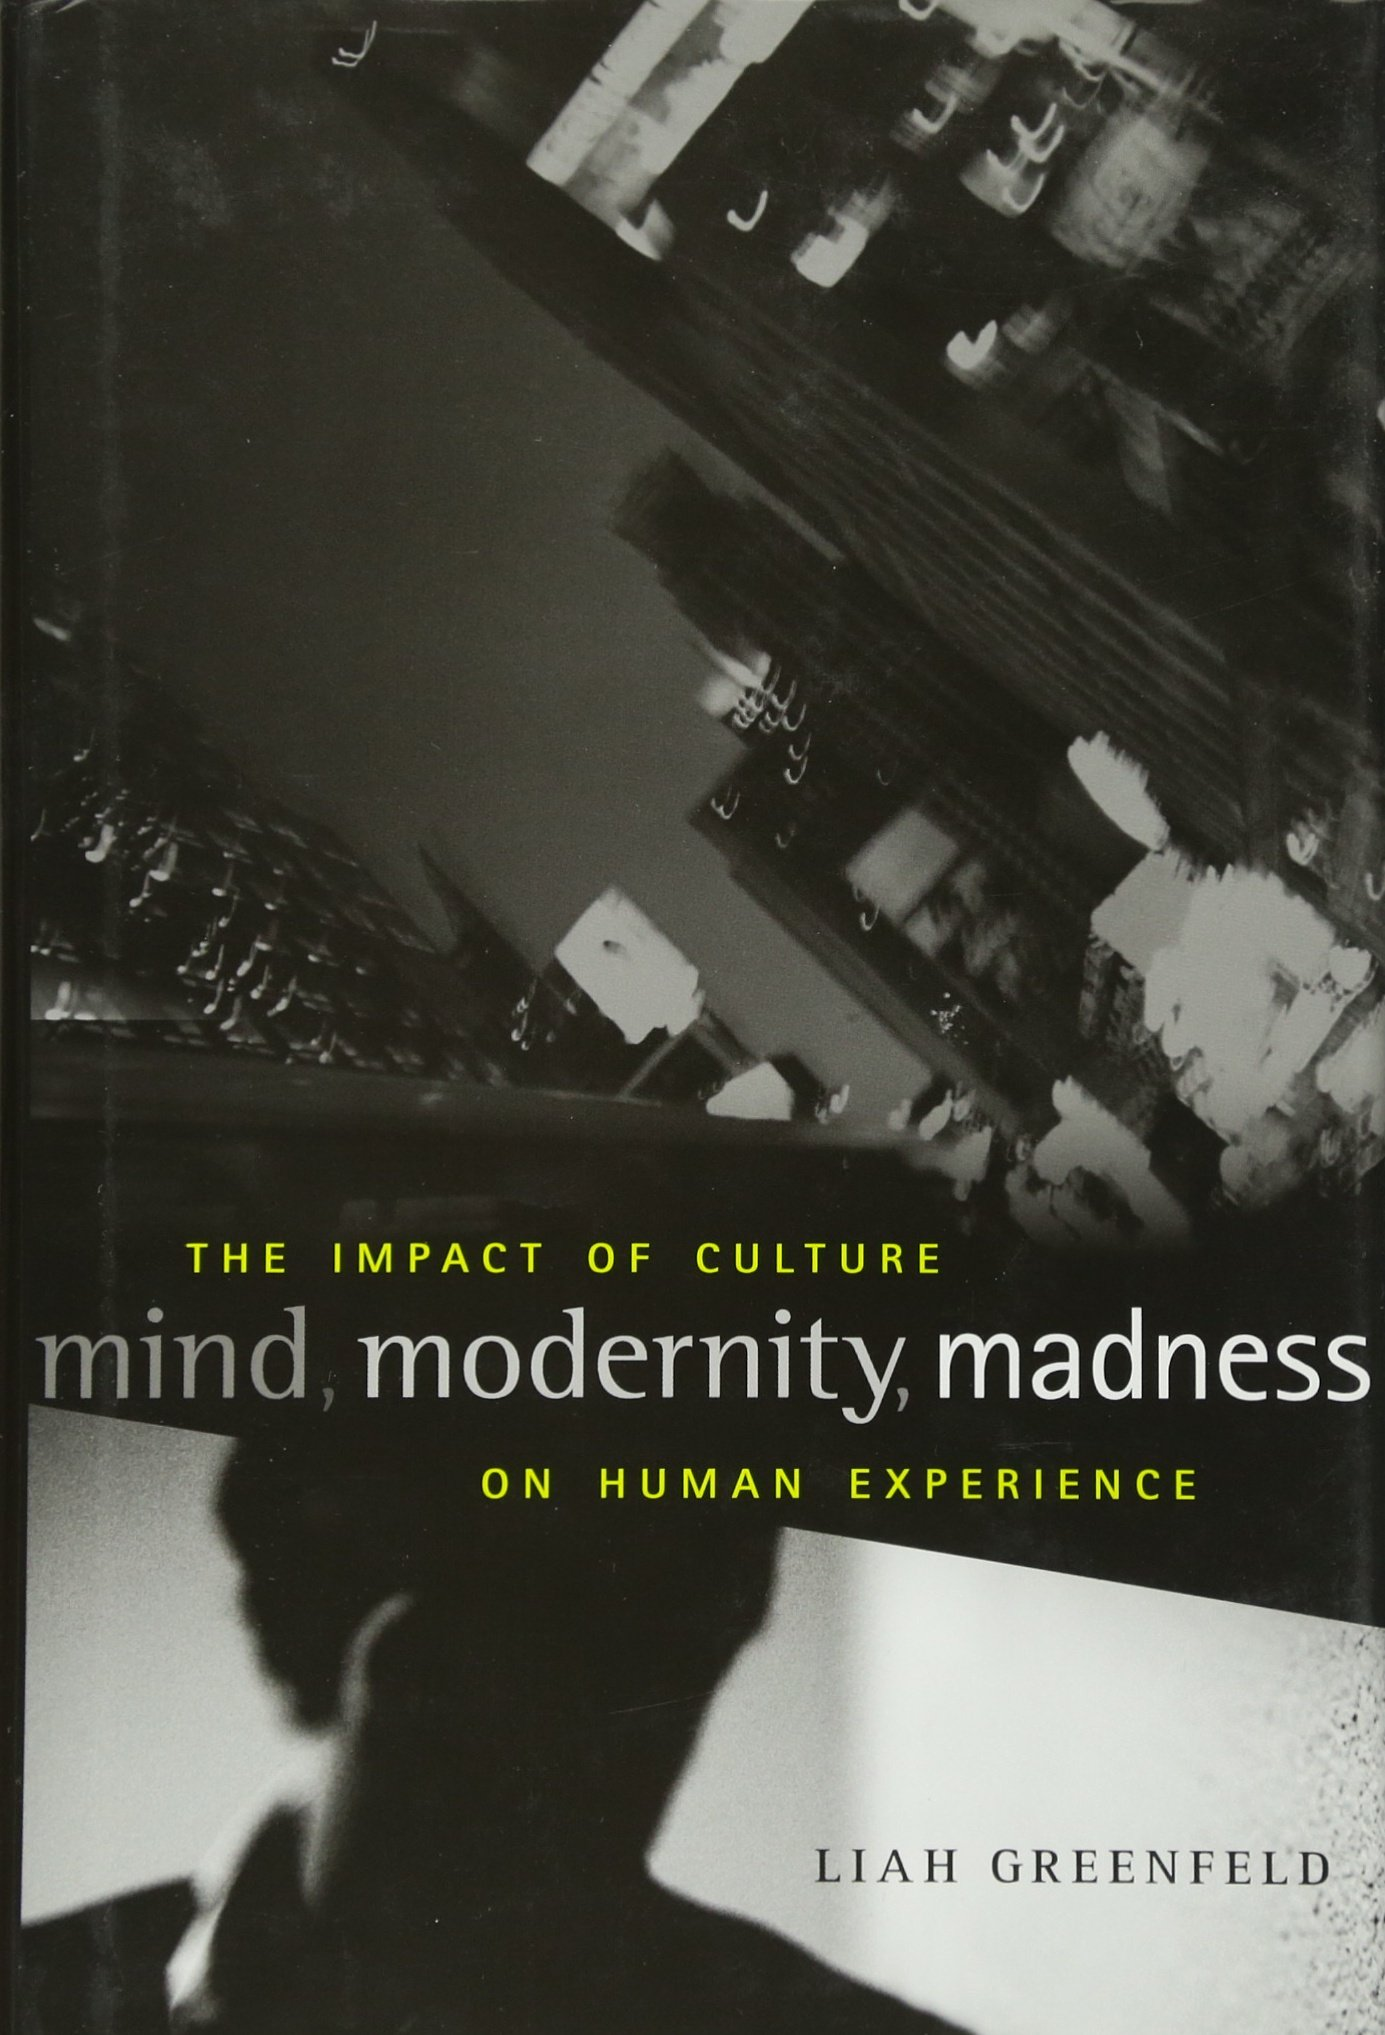 Download Mind, Modernity, Madness: The Impact of Culture on Human Experience PDF